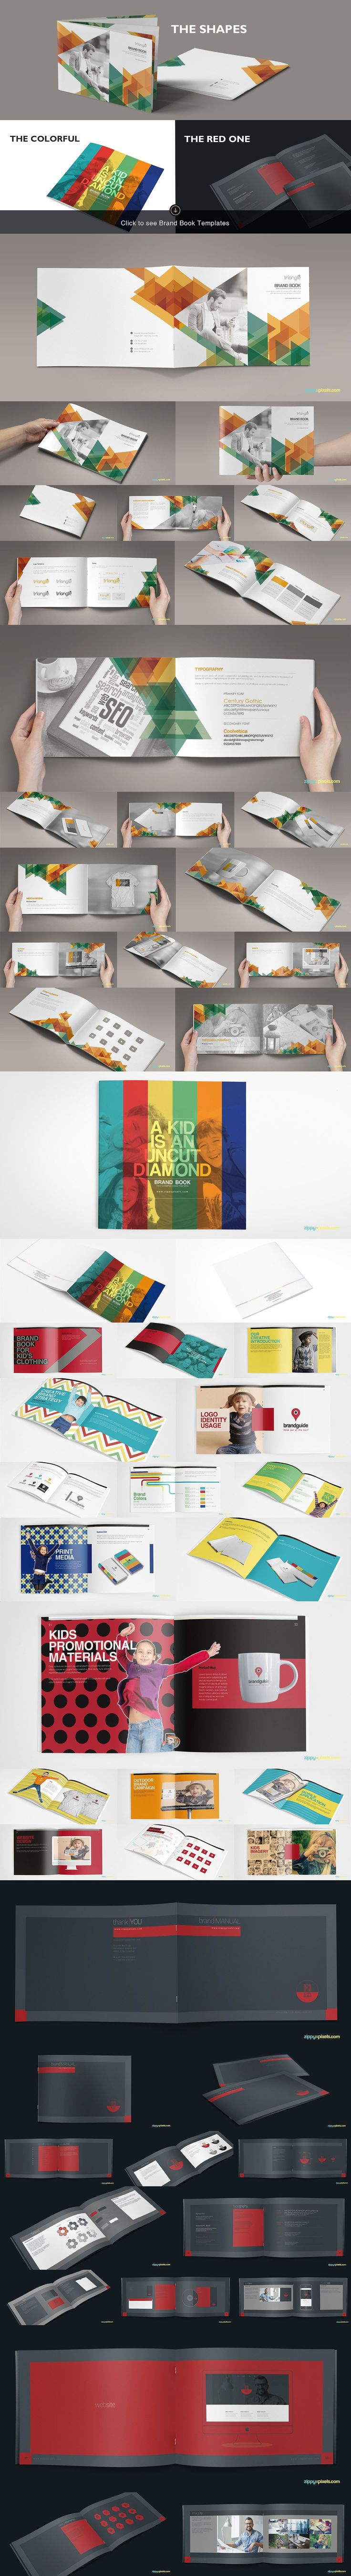 15 Brand Guidelines Templates Bundle 64 best